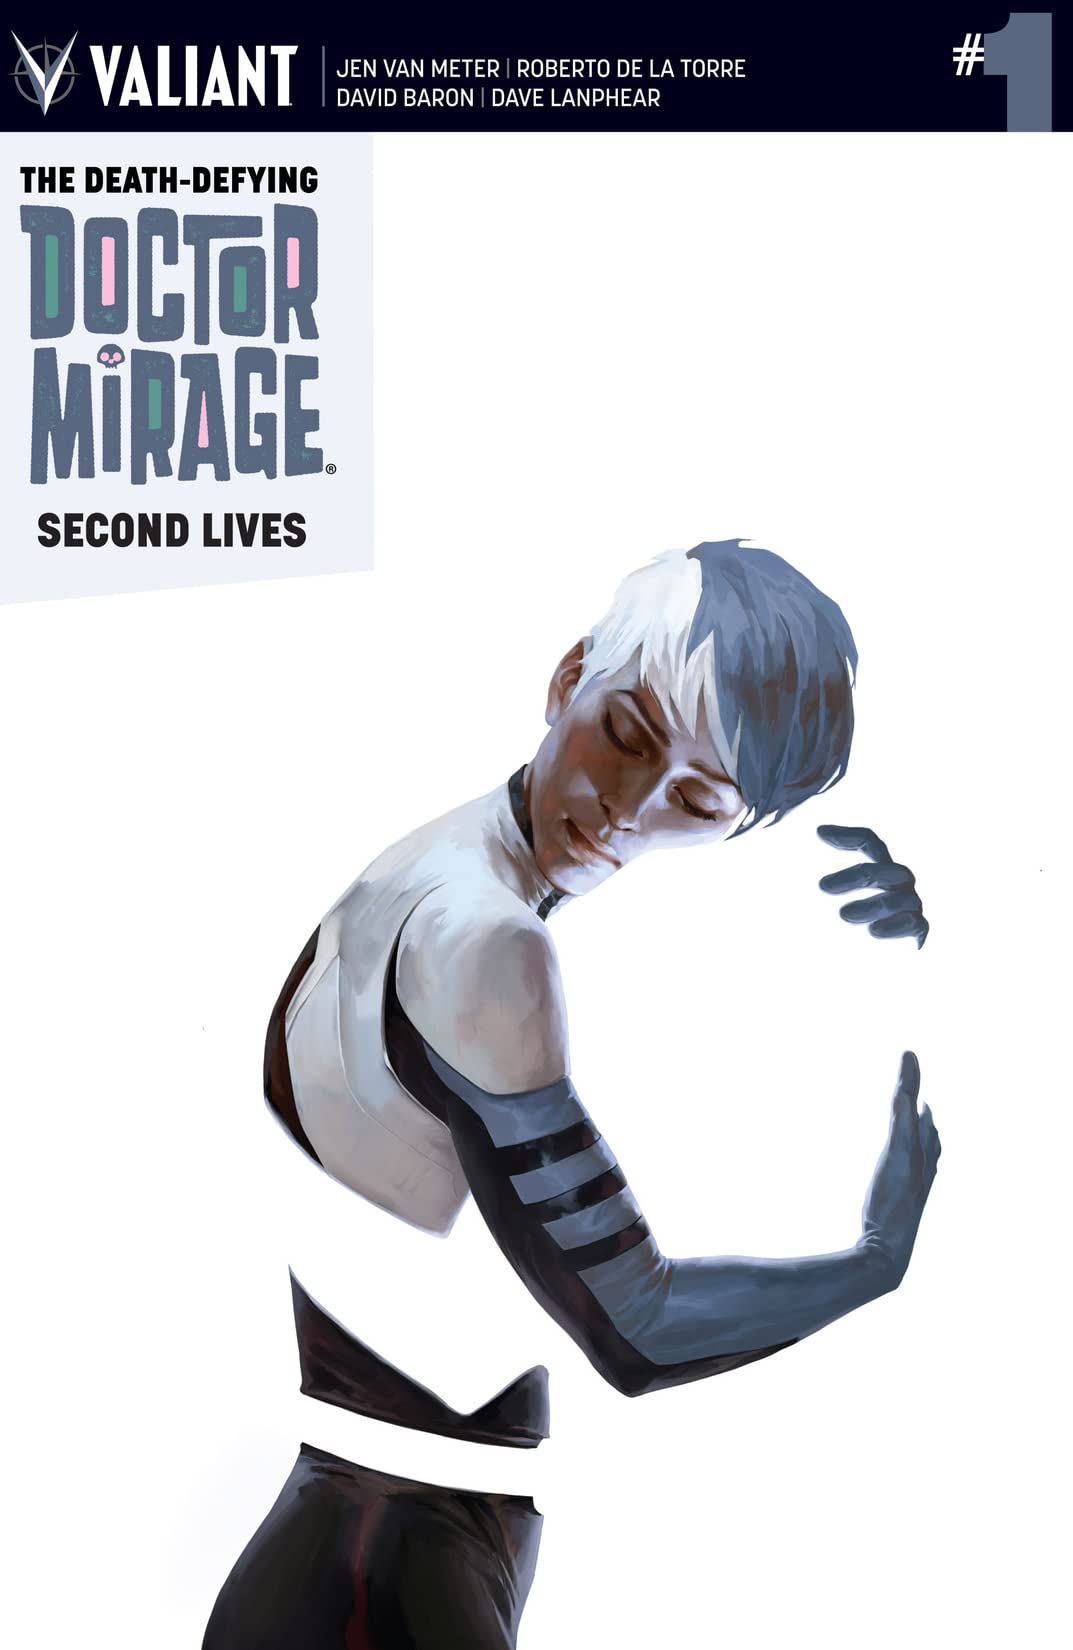 The Death-Defying Dr. Mirage: Second Lives #1: Digital Exclusives Edition